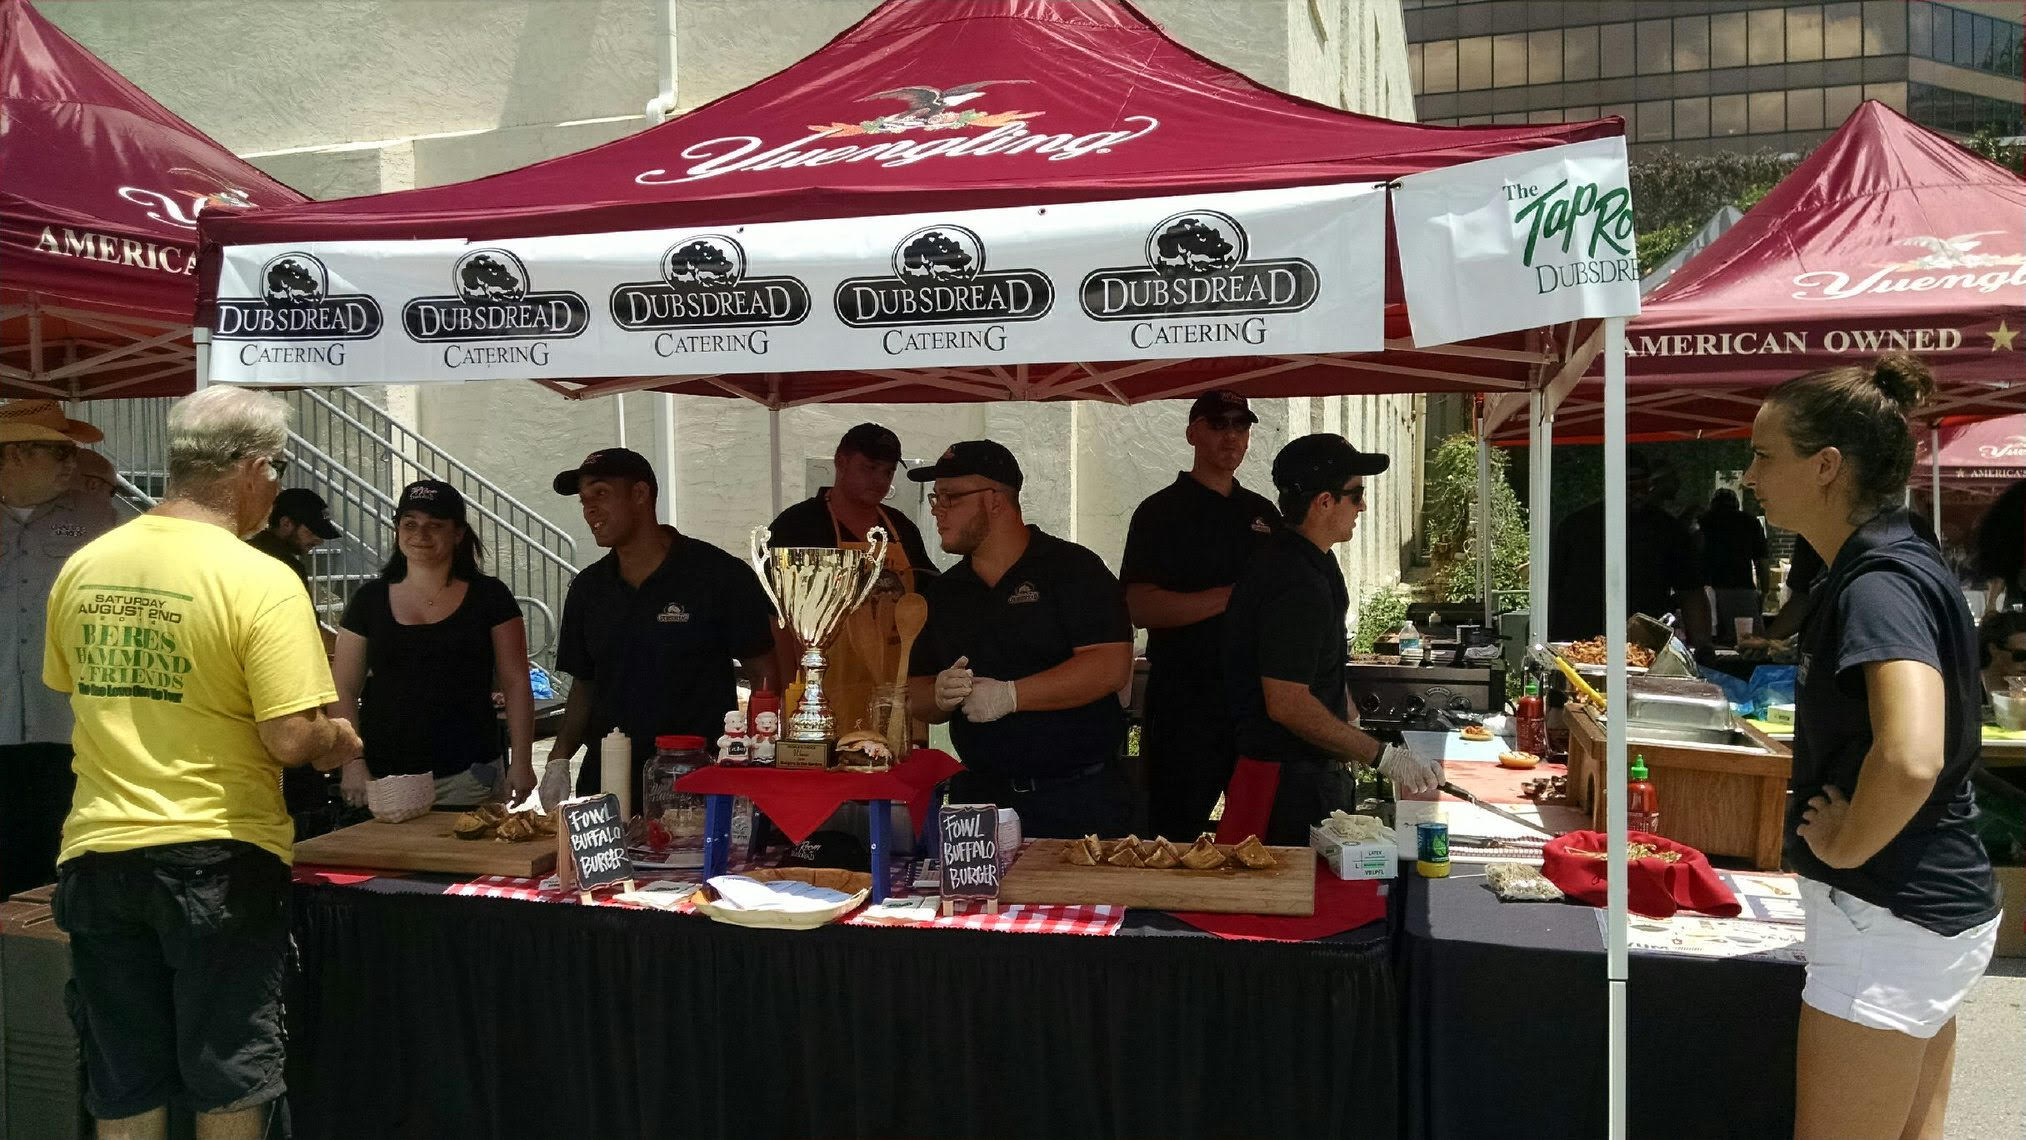 dubsdread catering crew under canopy at the burger bash